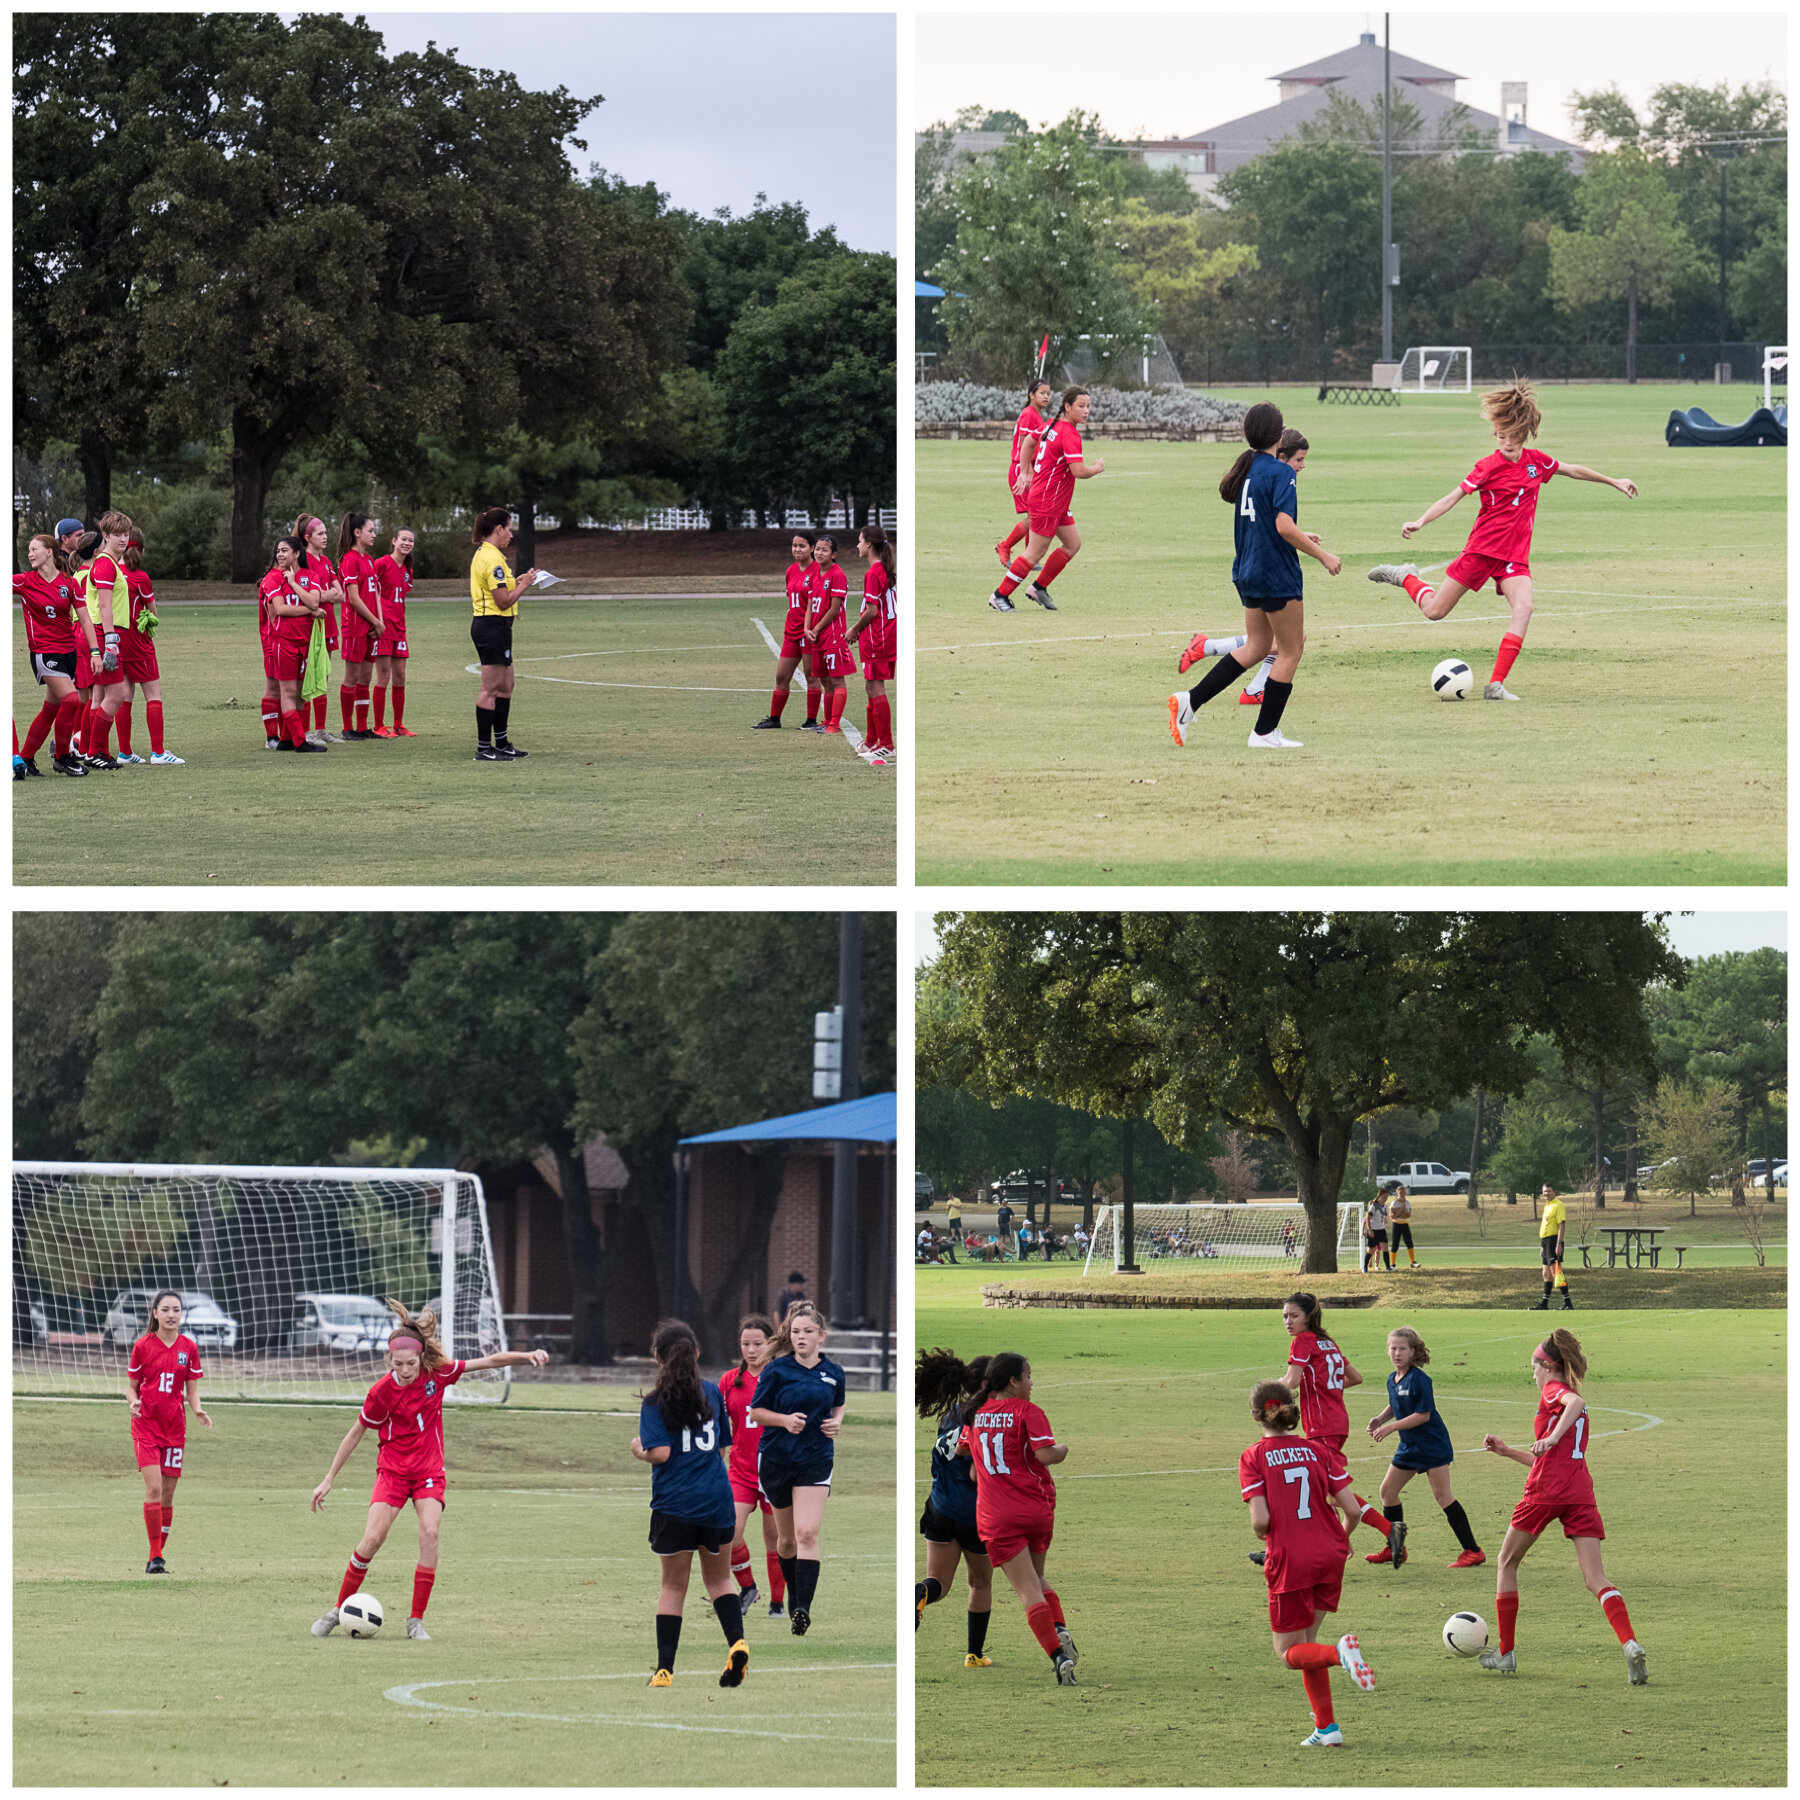 The U14 Rockets are back at it for the fall season, playing other U14 teams as well as U15 and U16. The beginning of the season was rough but they are really hitting their stride the last couple of games. Love to watch them play!